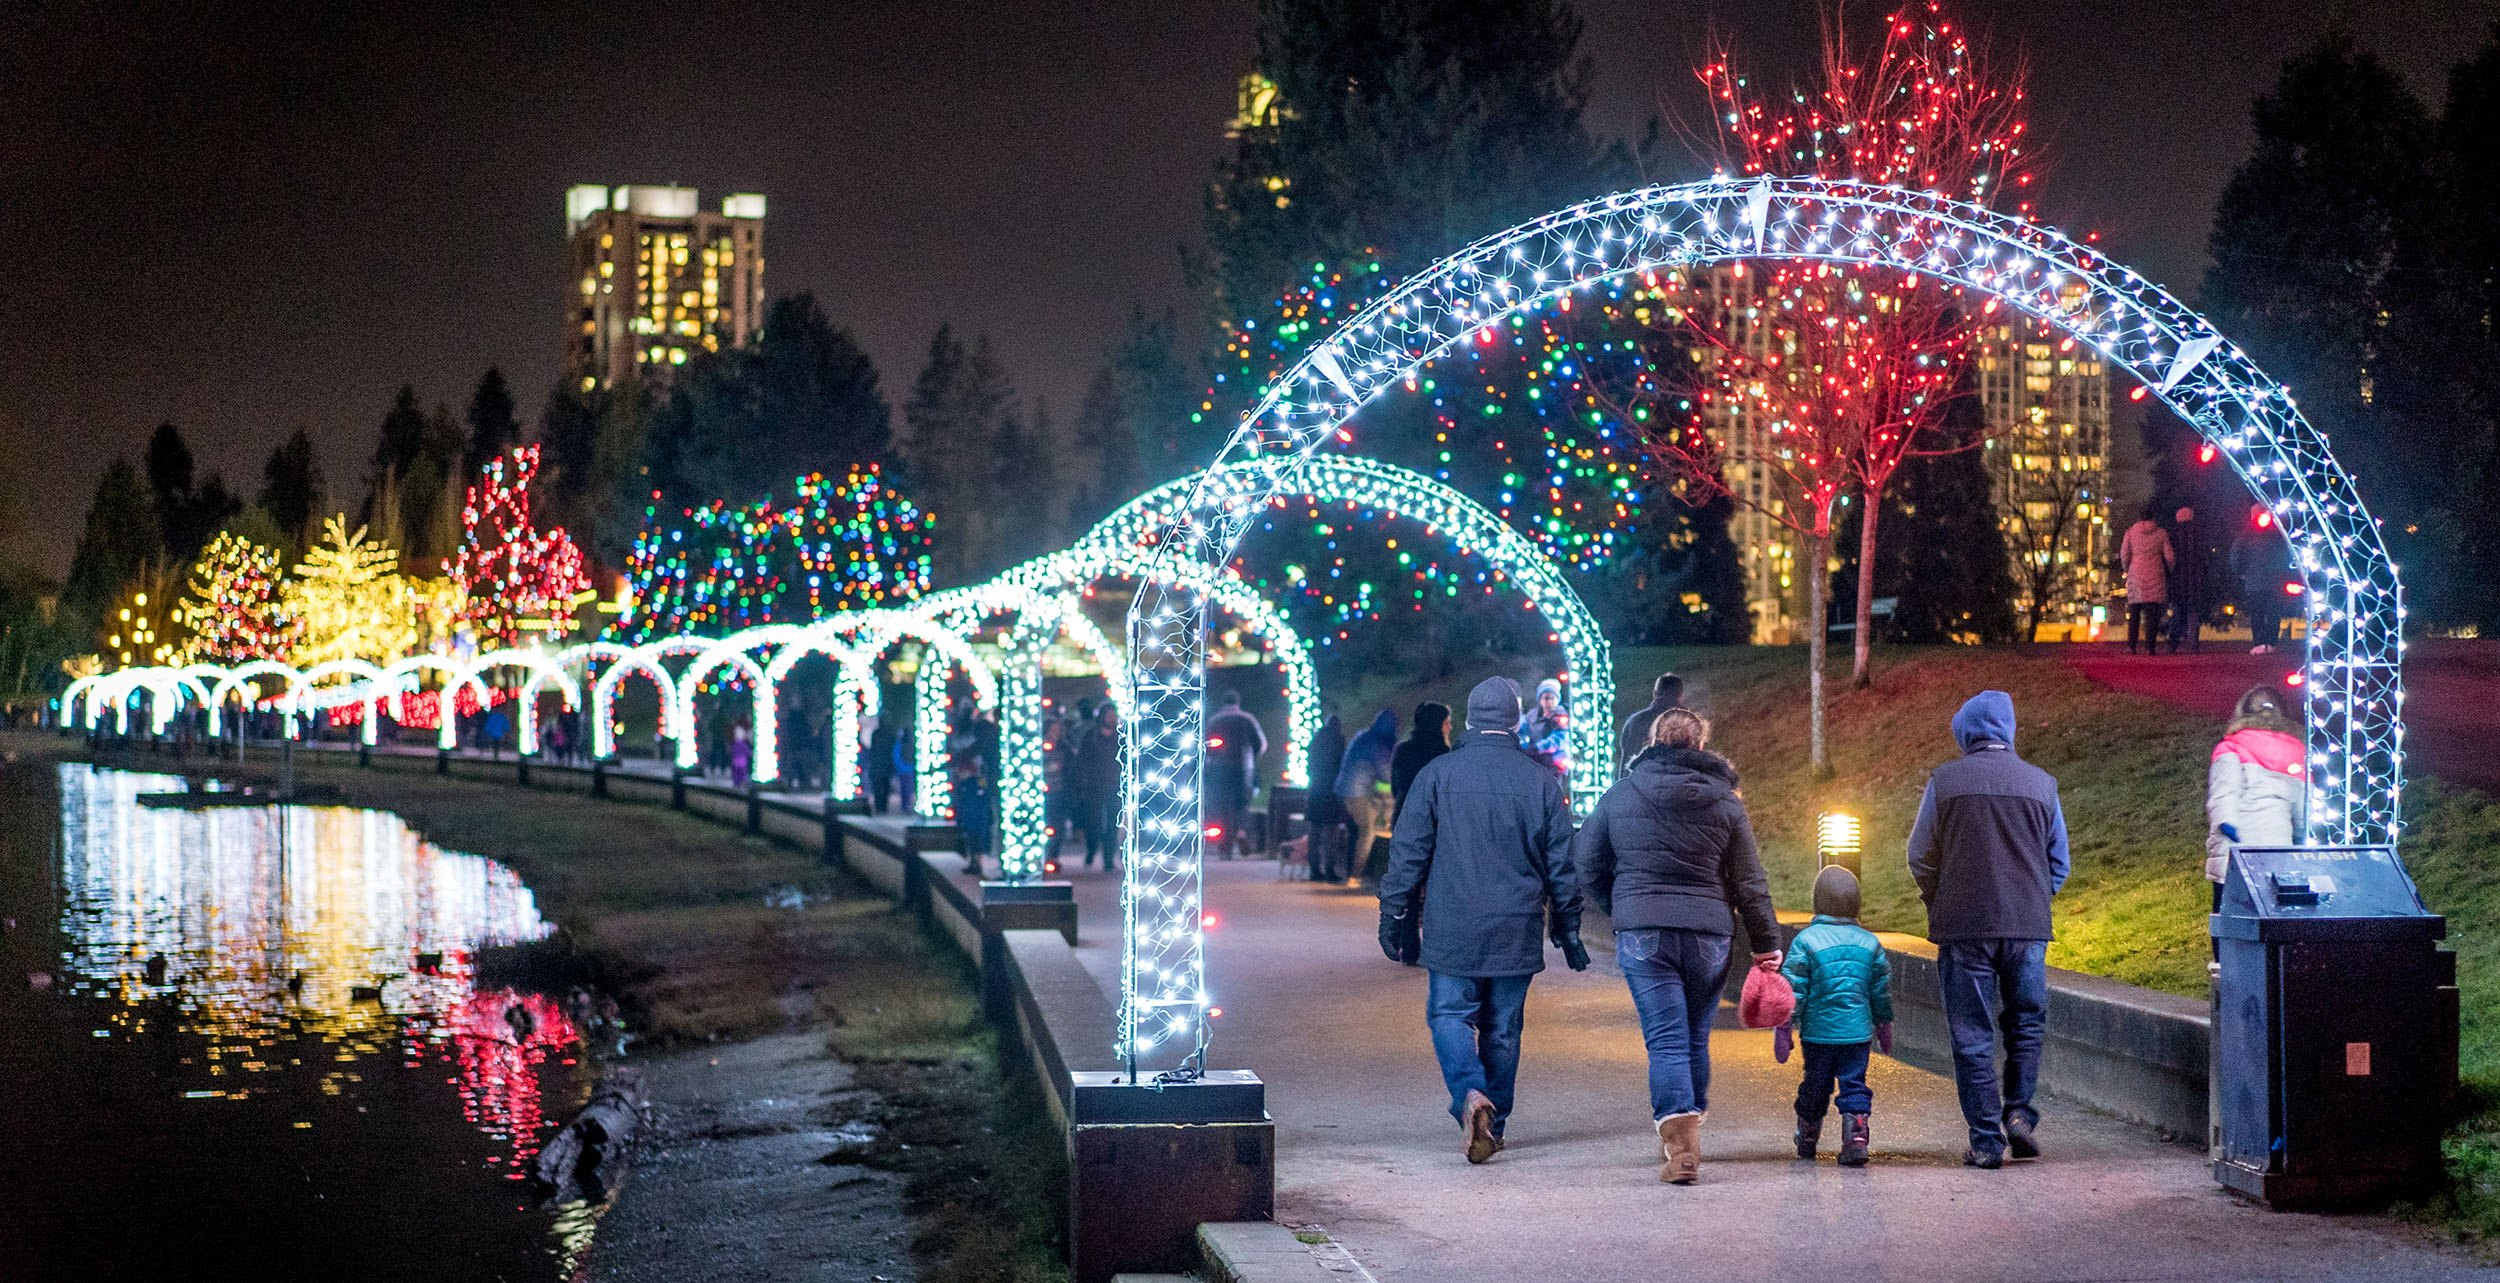 30 festive places to see Christmas lights in Metro Vancouver